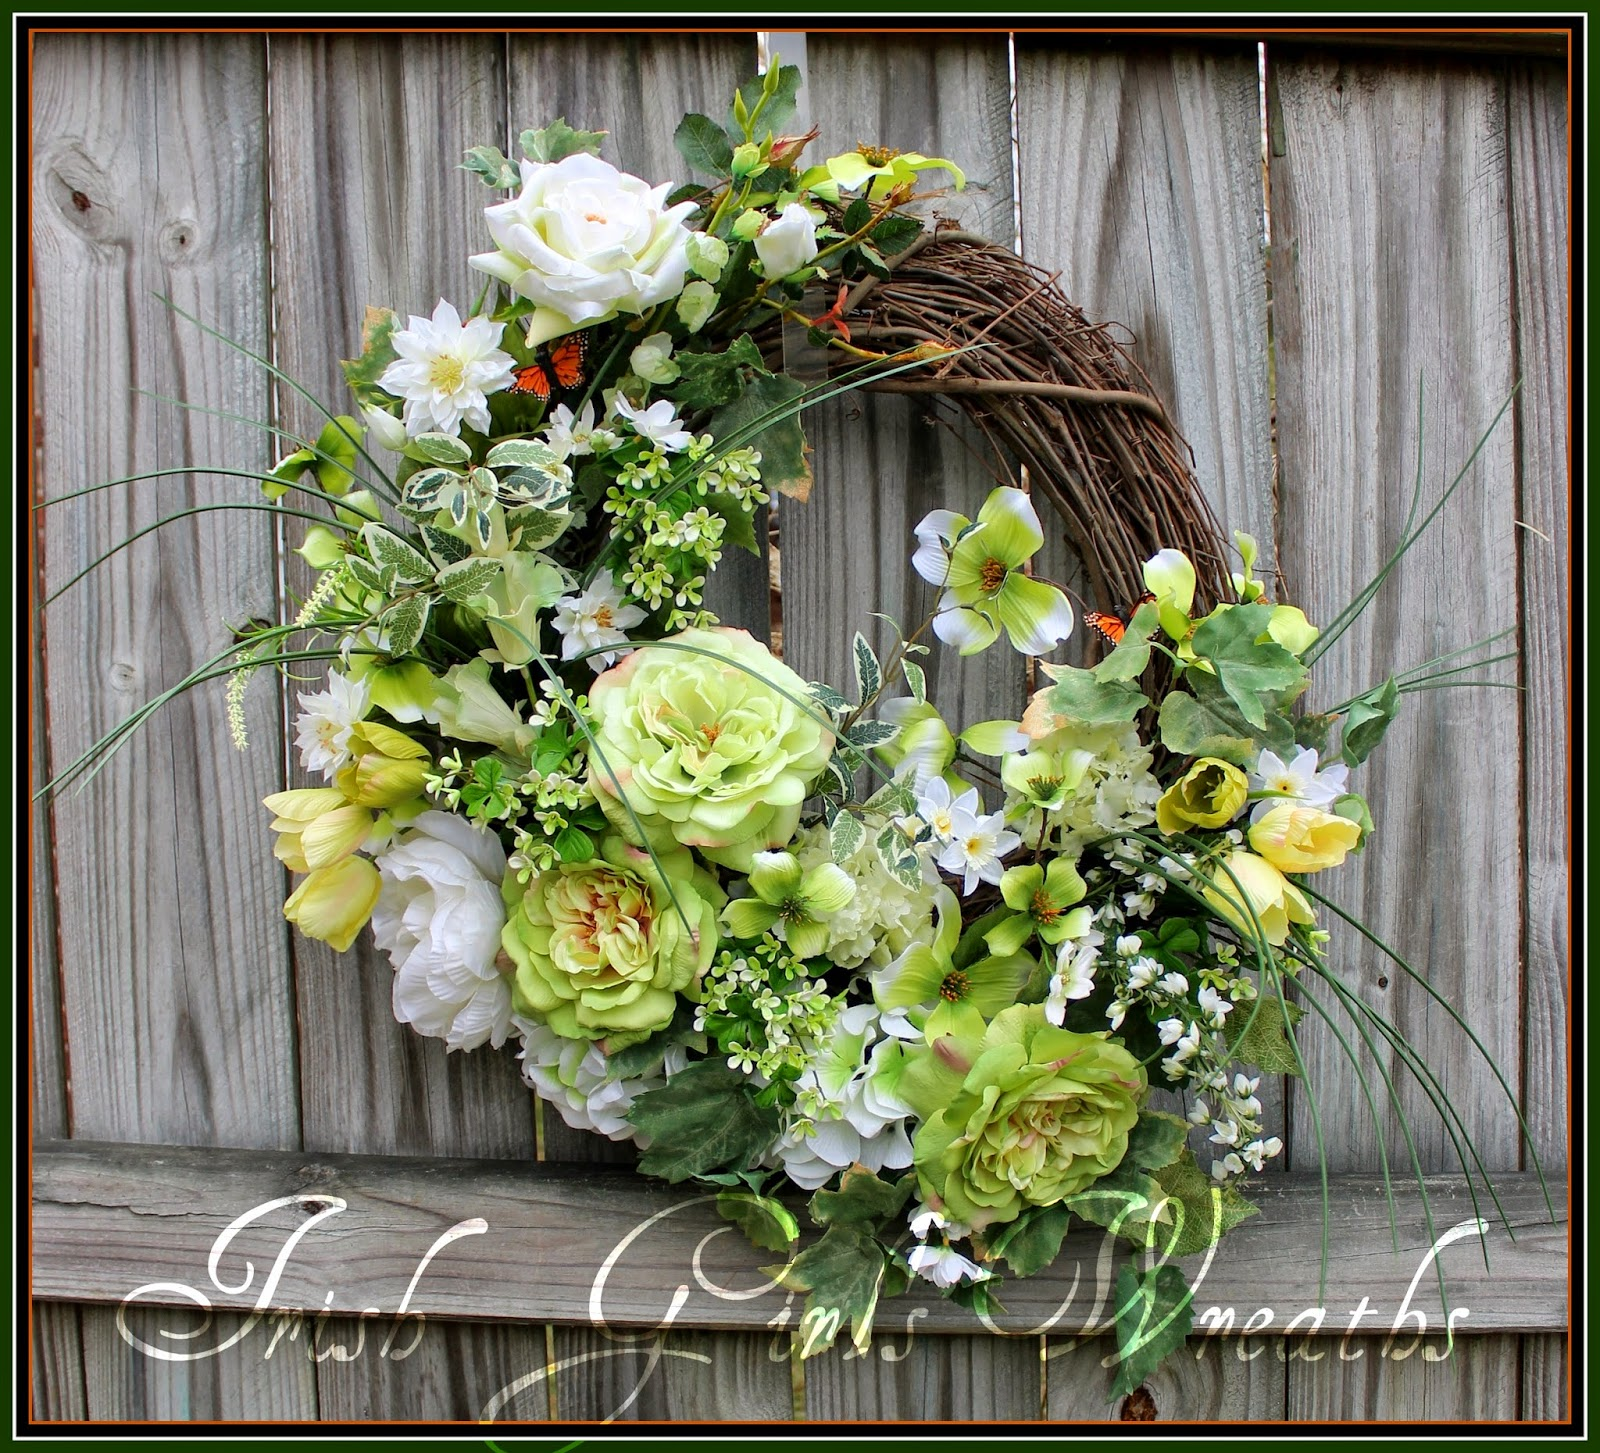 St Patricks Cottage Garden- featuring Sophia Roses, Clematis, dogwood, flowering Shamrocks, garden roses, bellflowers, peonies, Hydrangea, tulips, and MORE!